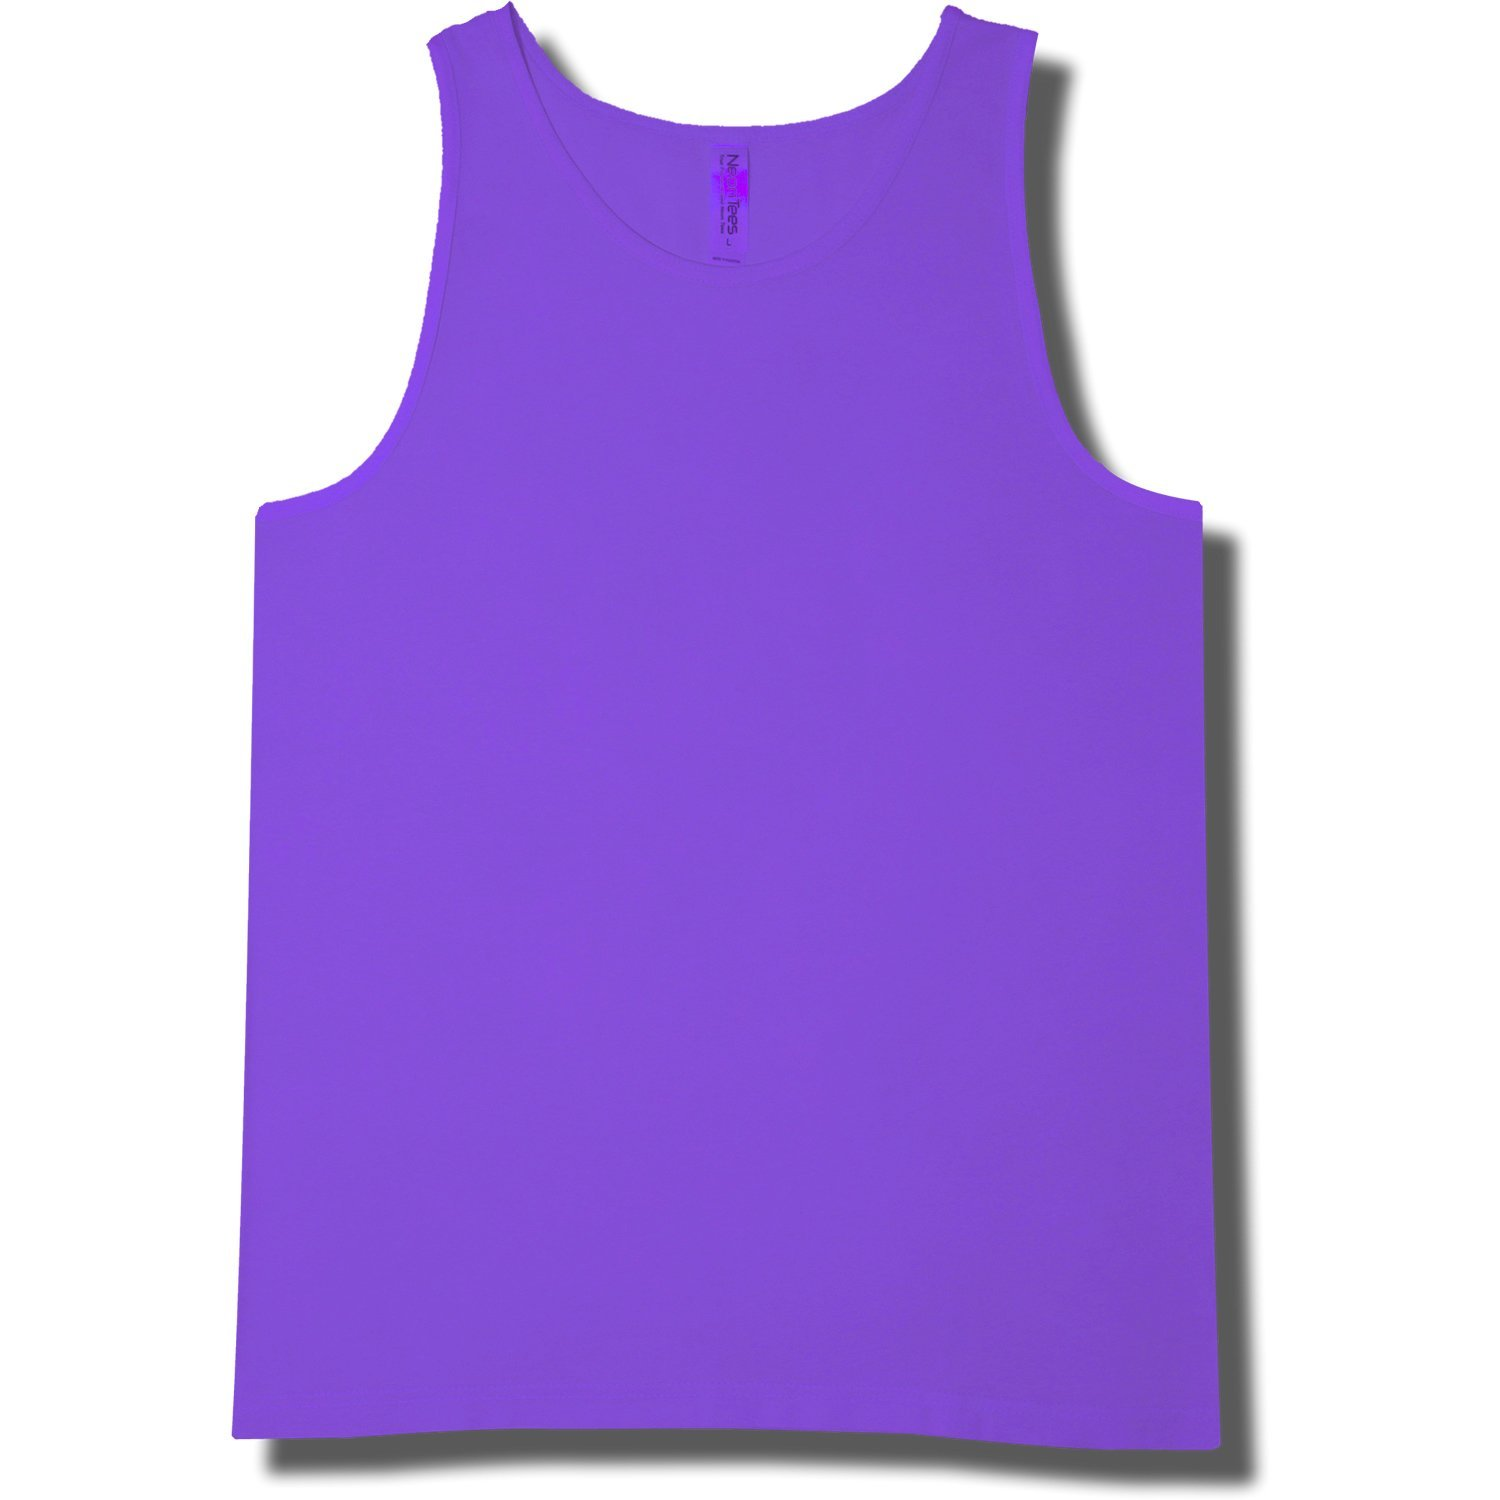 8d72e4c452987 Get Quotations · Youth Bright Neon Tank Top in 6 Bright Colors